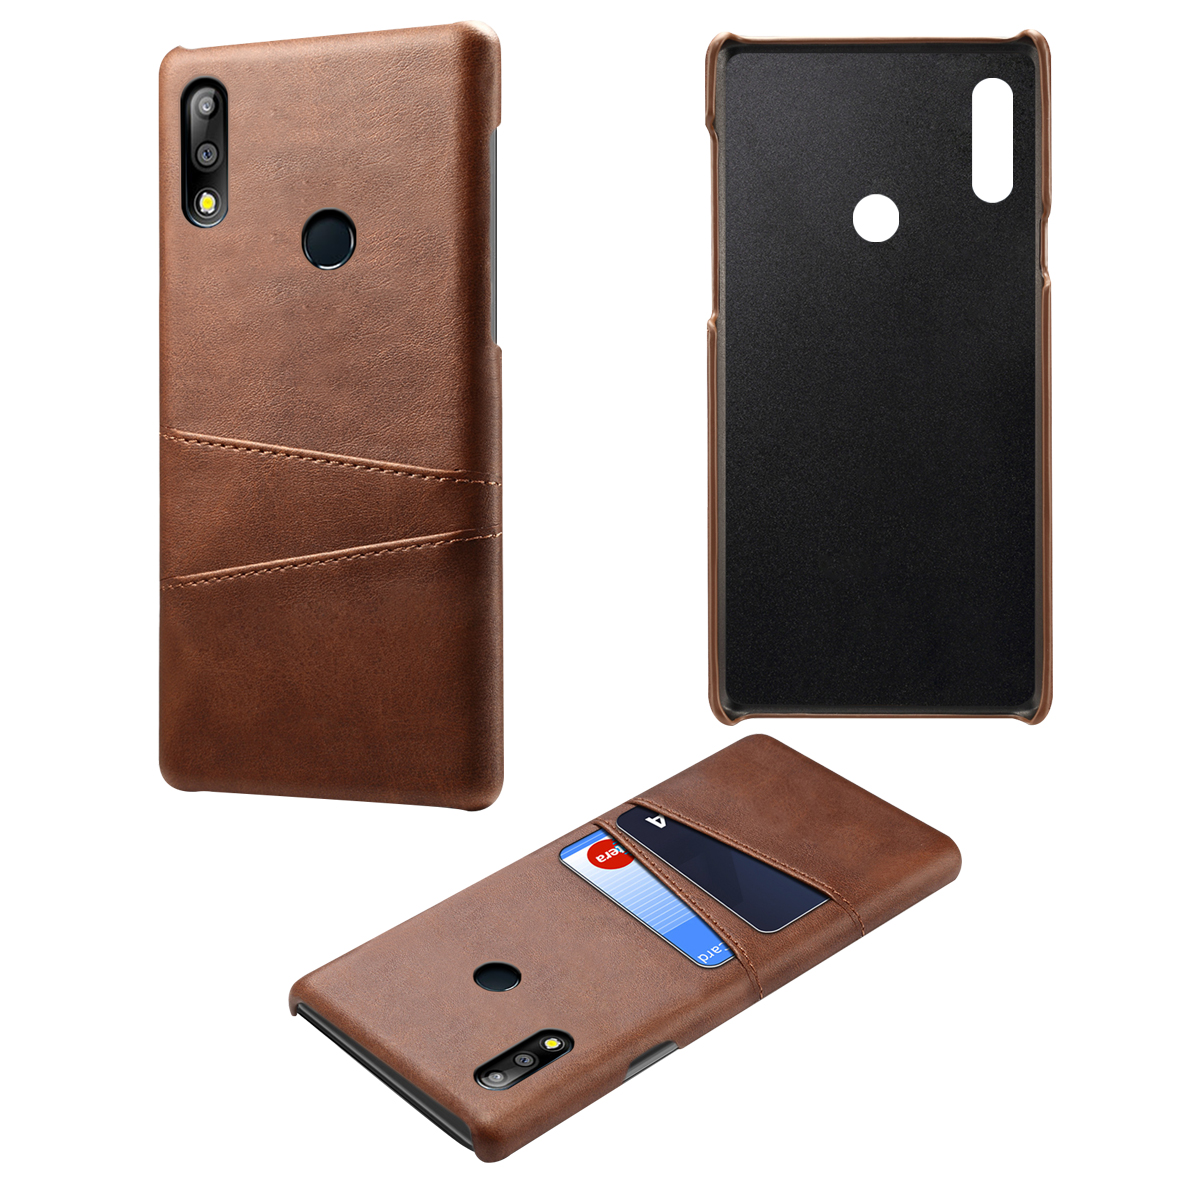 For Asus Zenfone Max M2 ZB633KL Case Luxury PU Leather Card Slot Holder Soft TPU Cover For Asus Zenfone Max Pro M2 ZB631KL Case